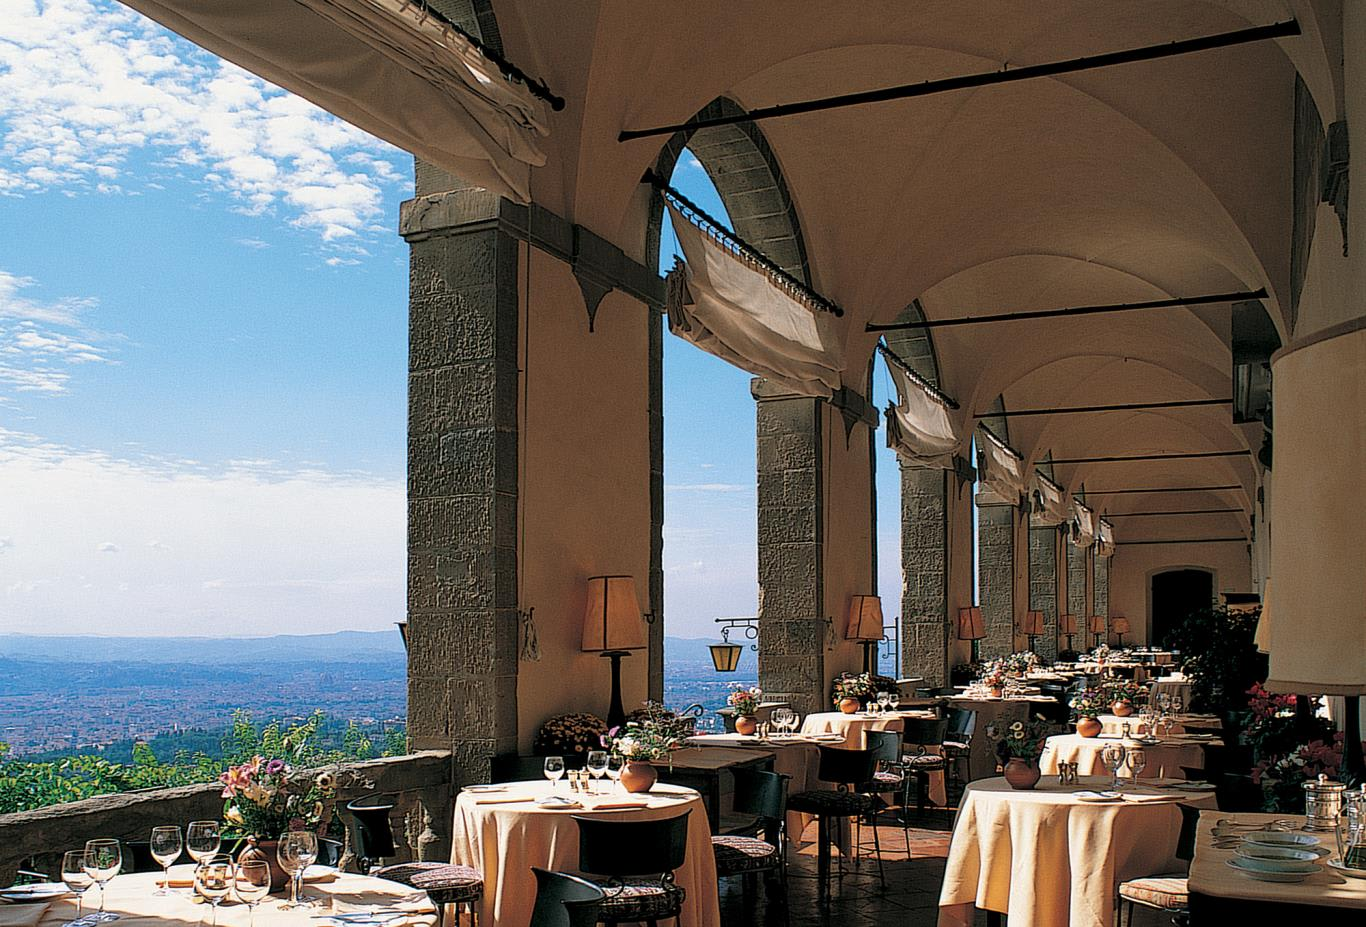 The Loggia Restaurant